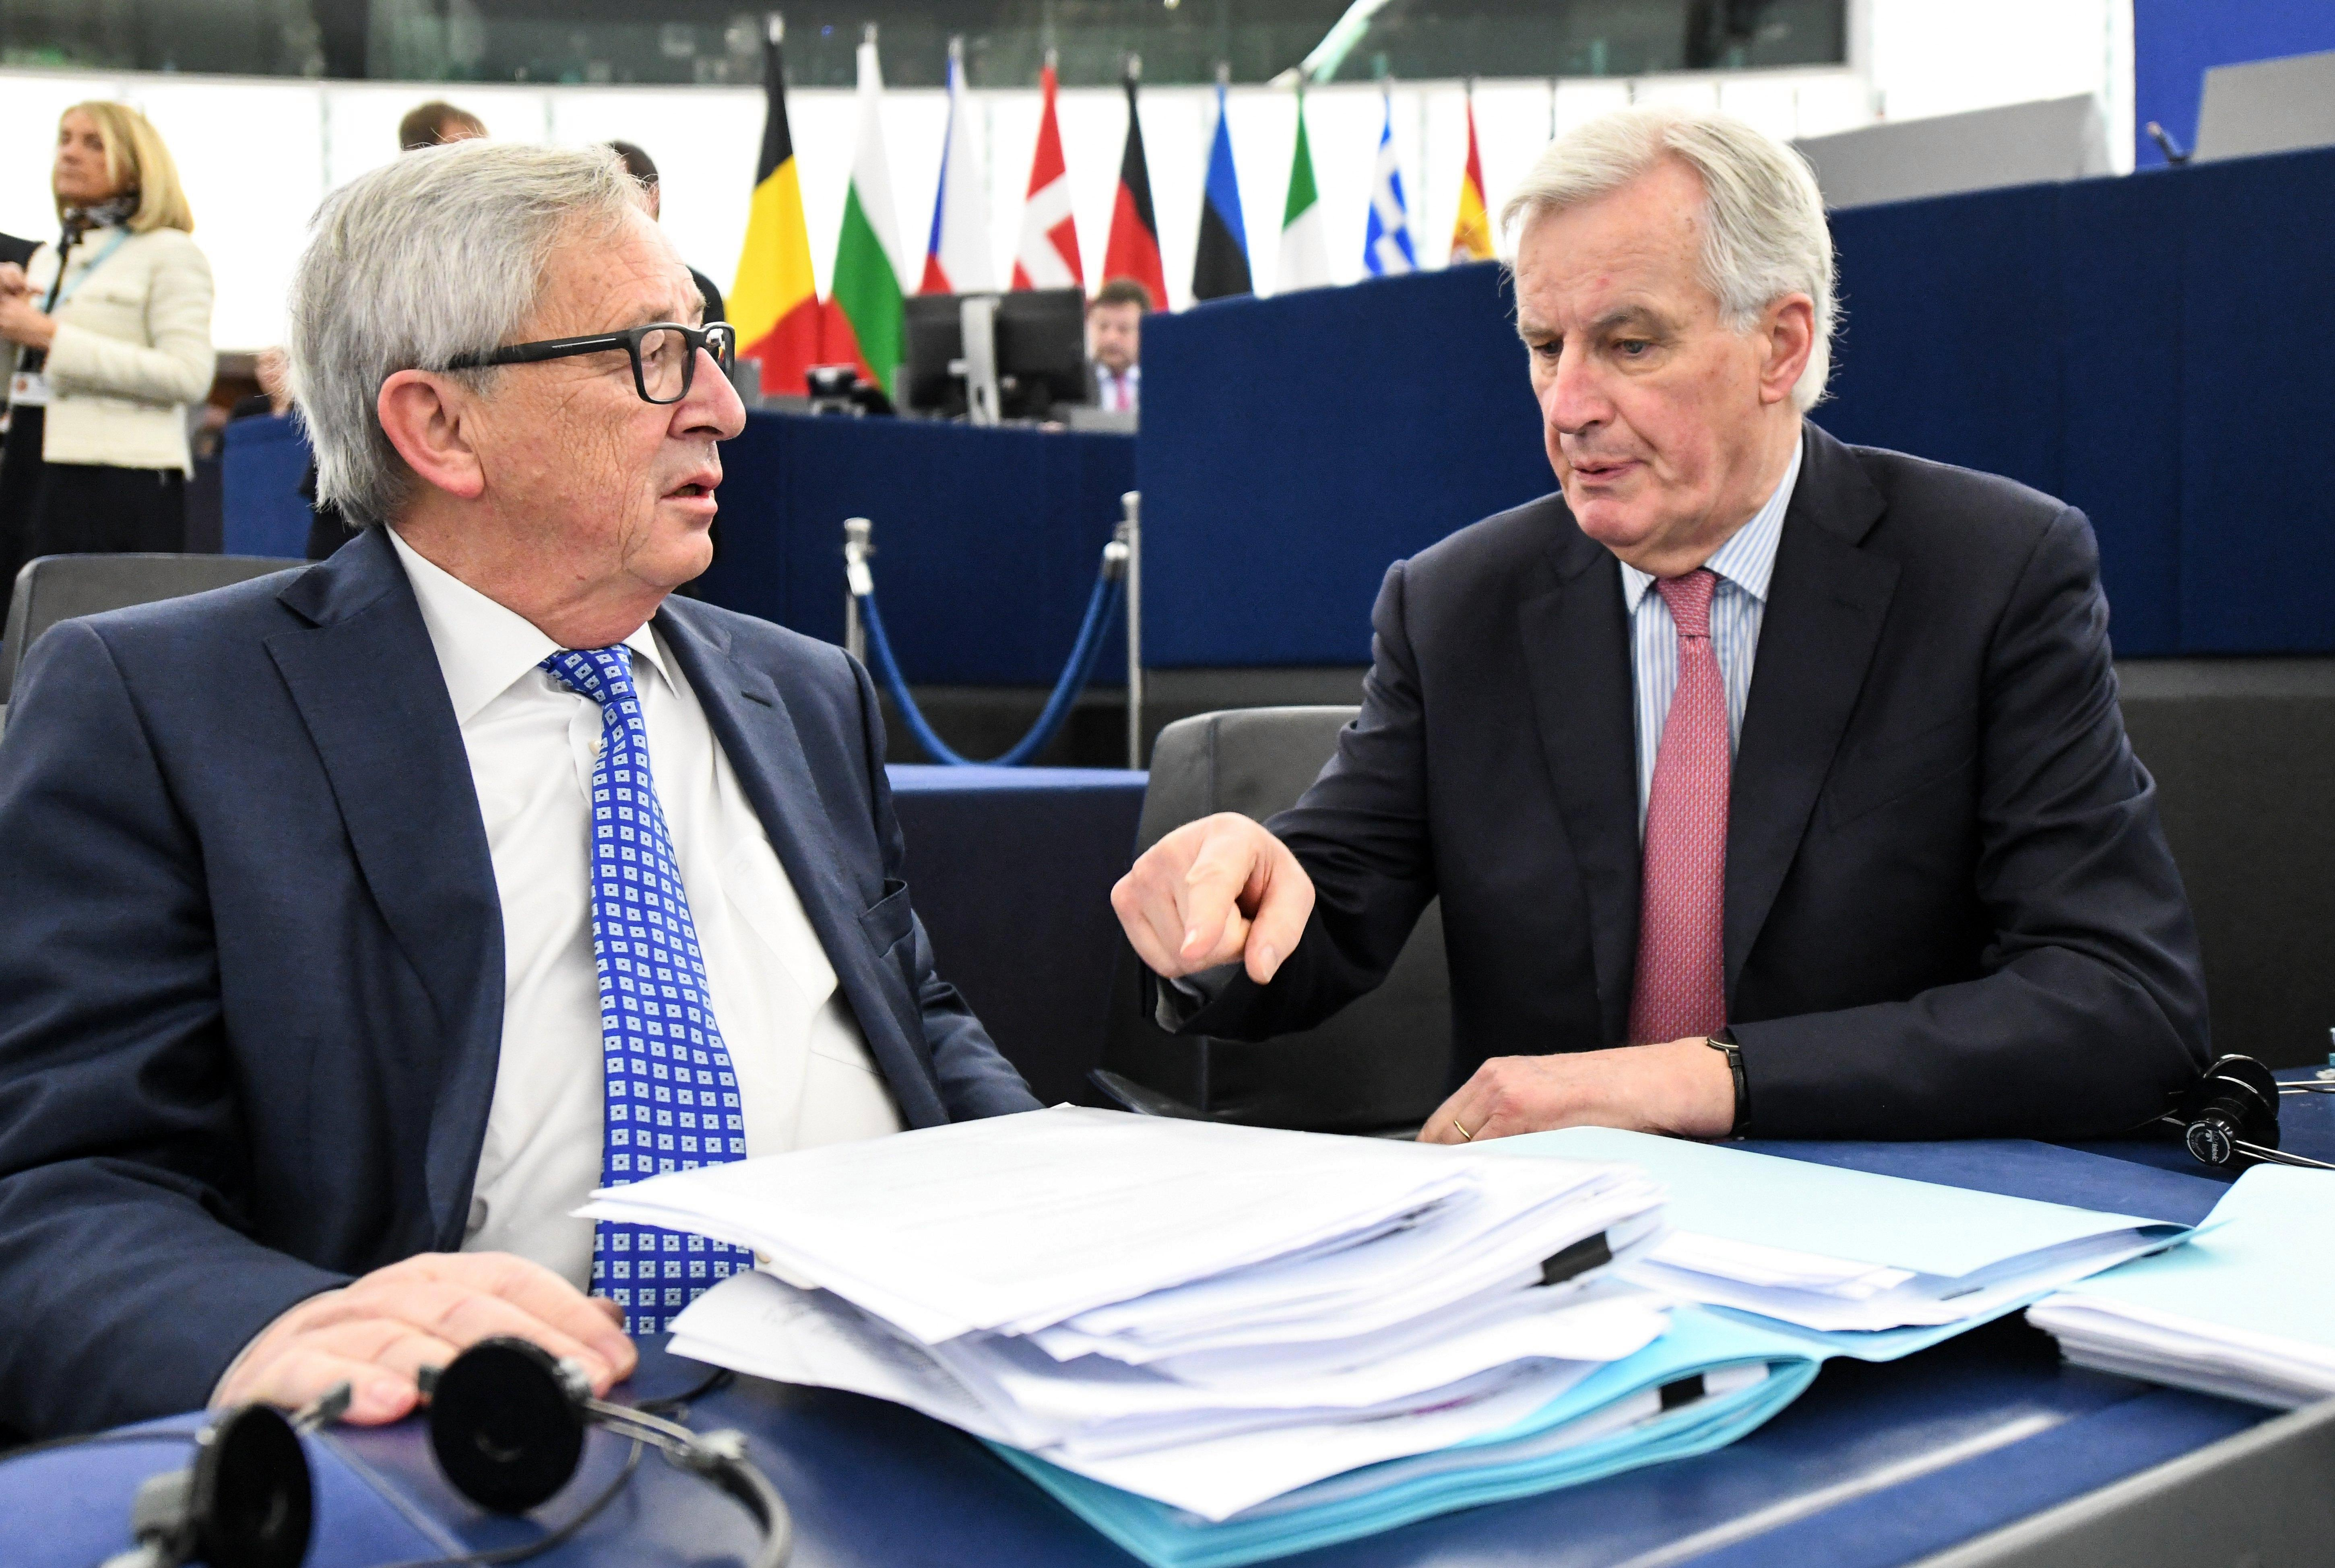 Britain will not stop handing Brussels cash until 2064 as Philip Hammond reveals Brexit deal means we will keep paying into EU pension pots for another 45 YEARS